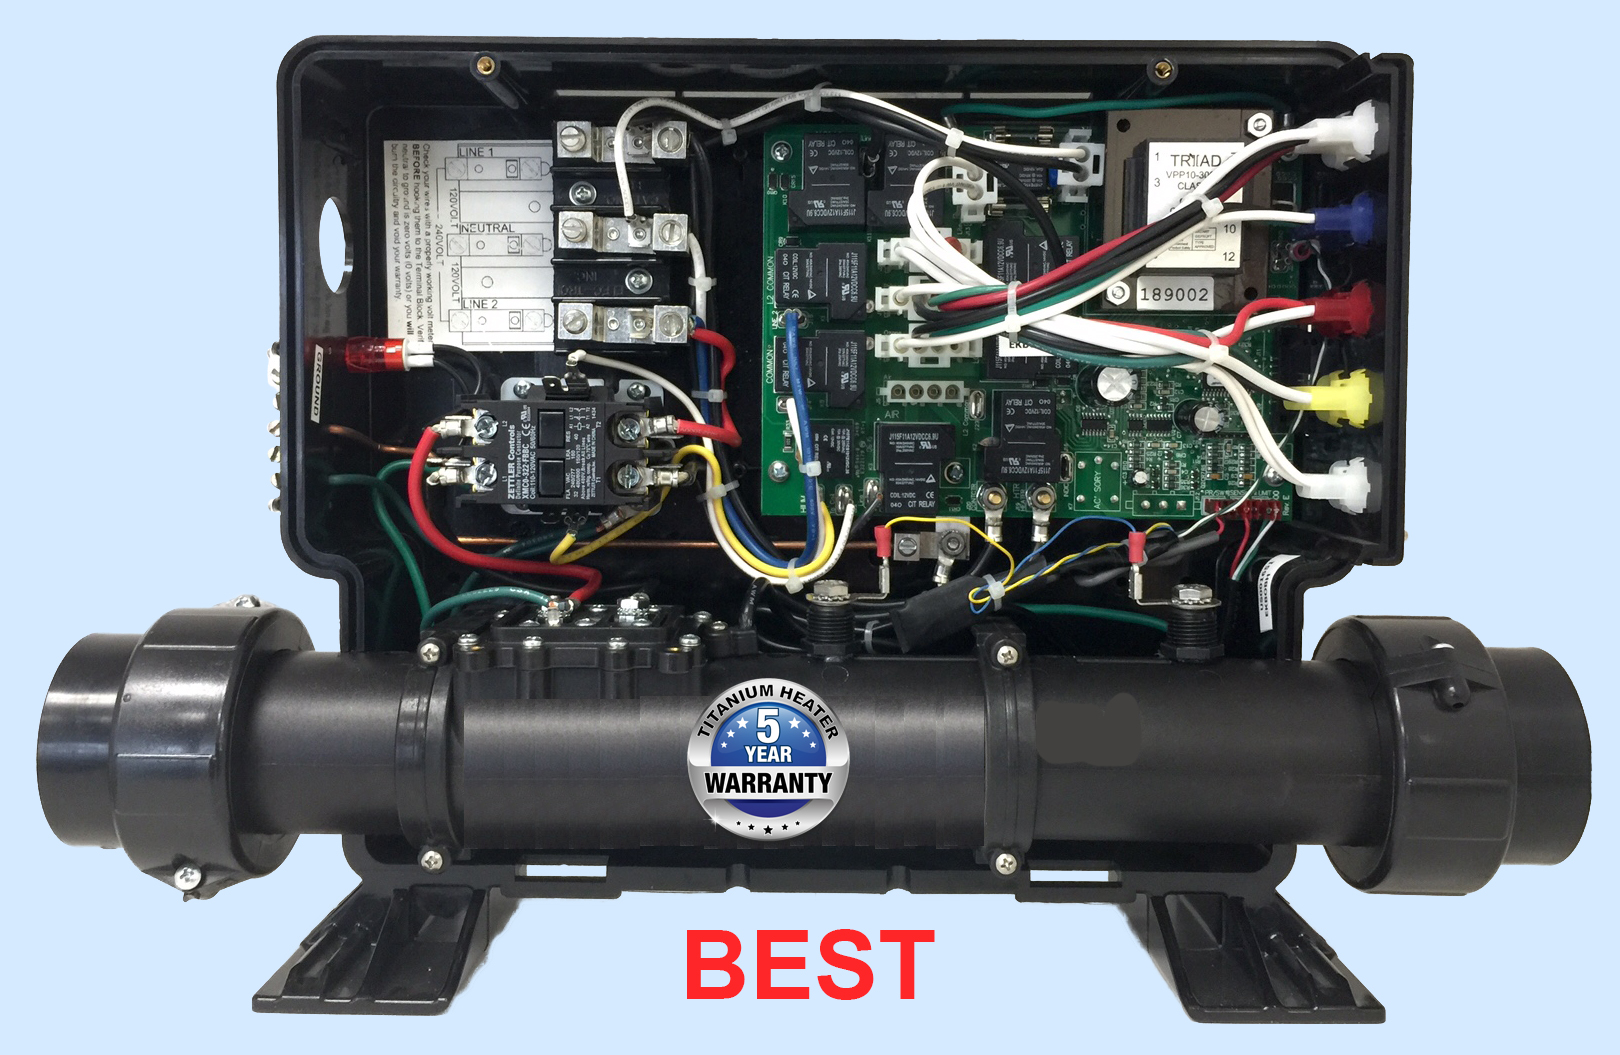 cal spa whisper power unit wiring diagram vtec oil pressure switch hot tub pump best library master diagrams schematic 1992 ford f 150 gatsby